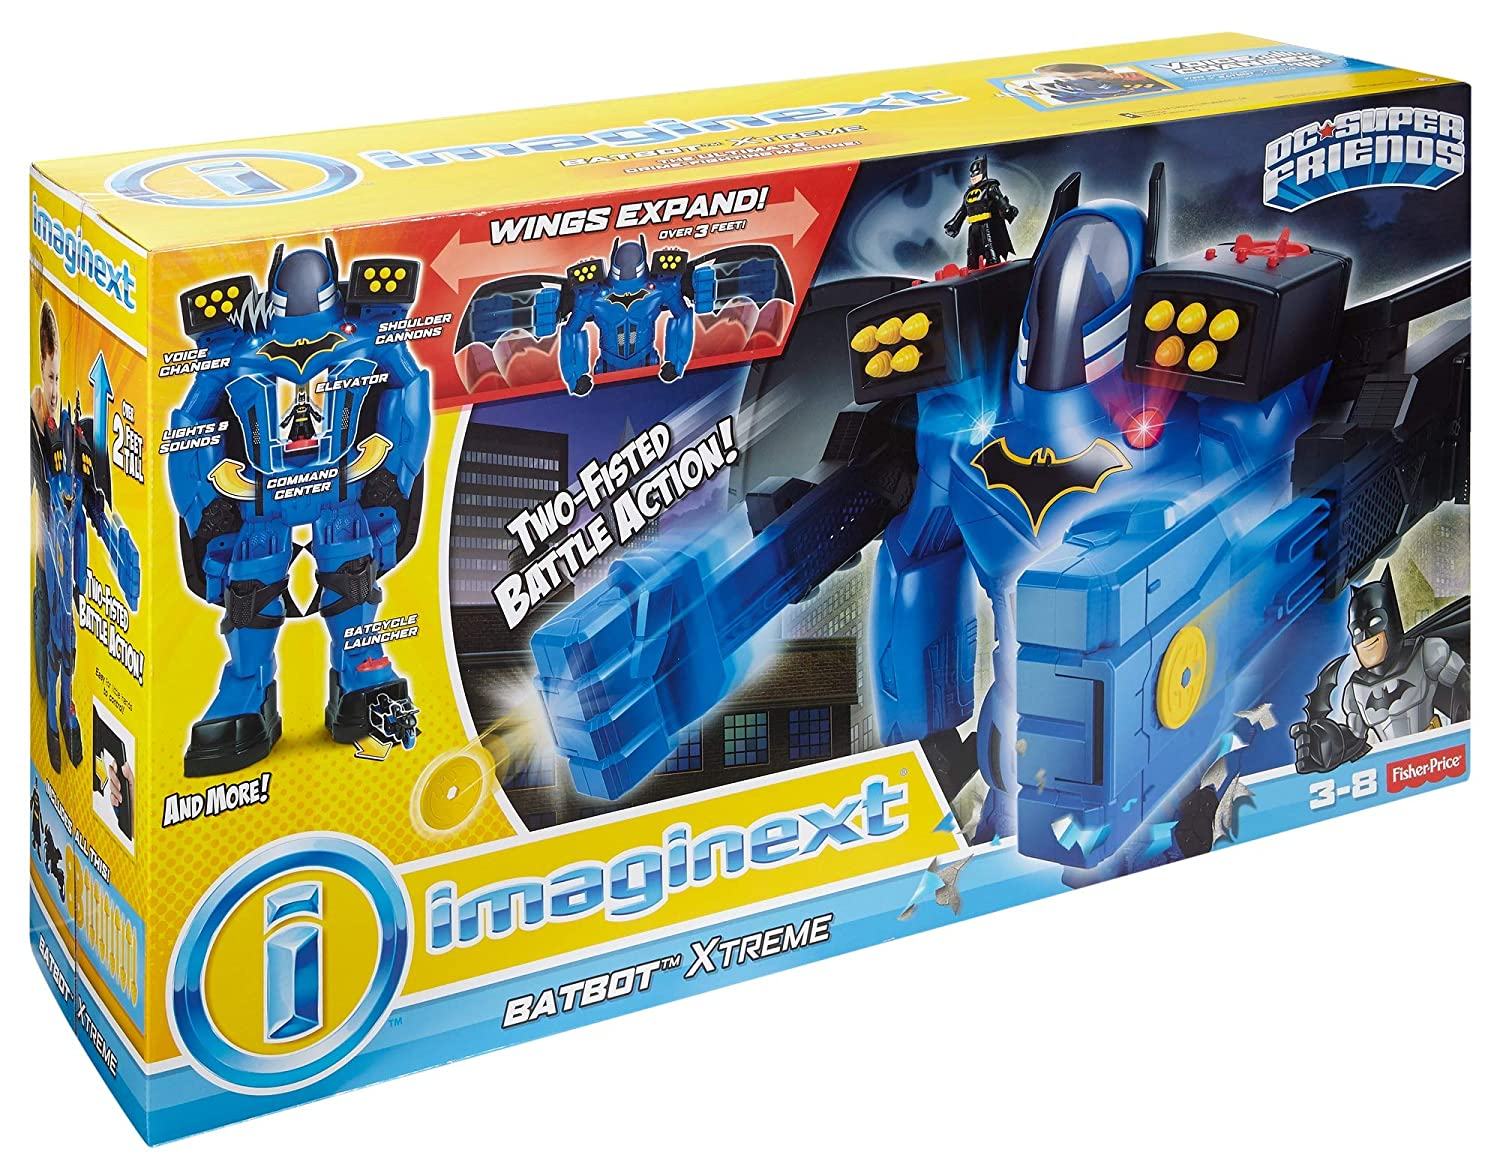 Replacement Batman Figure FGF37 Imaginext DC Super Friends Batbot Xtreme